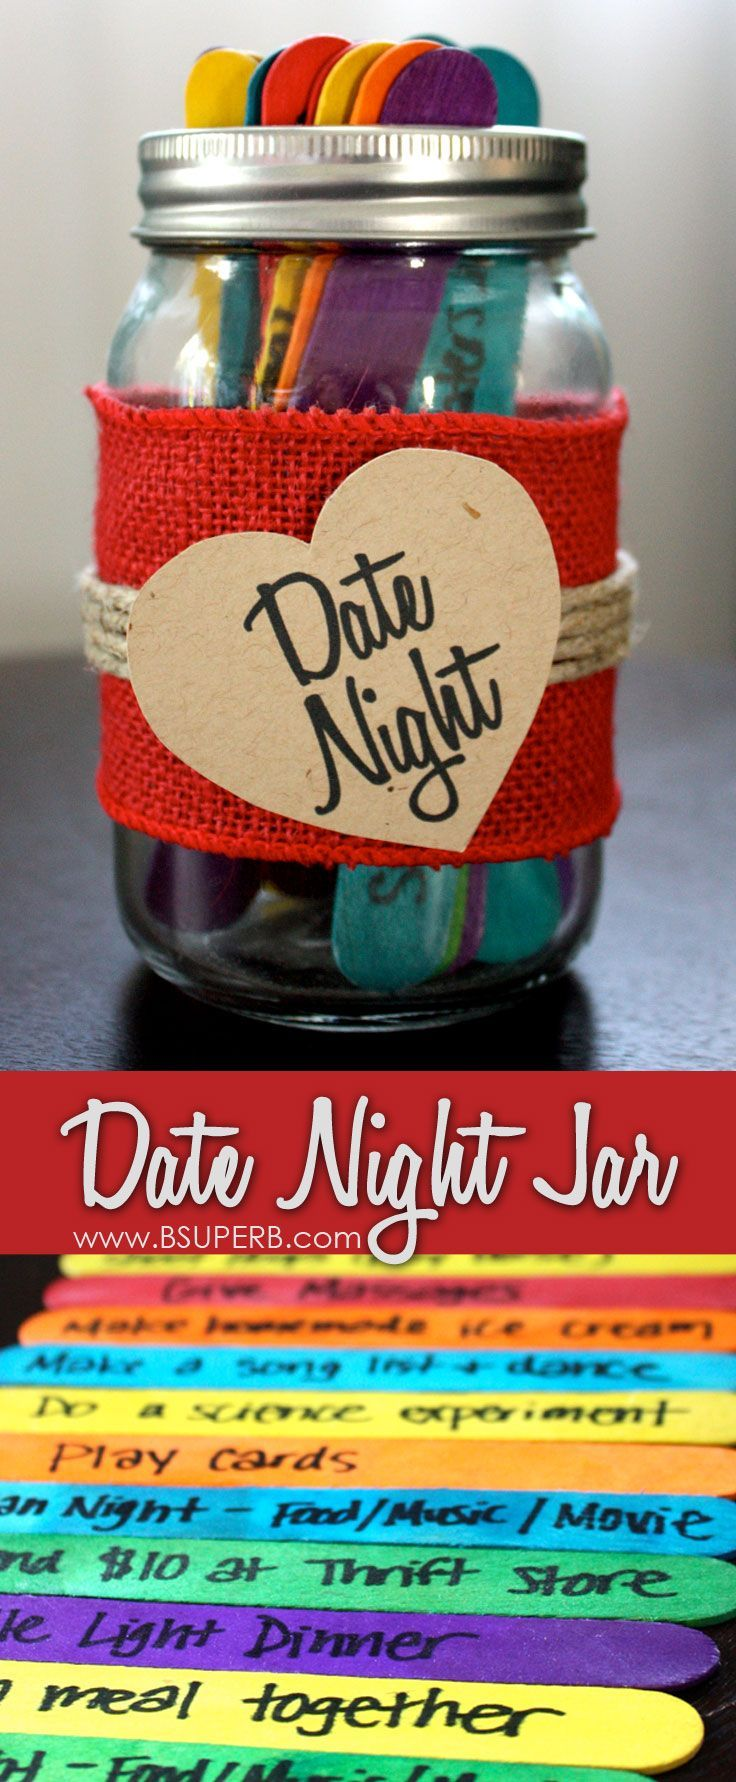 Date Night Jar - how to create it and date night ideas!